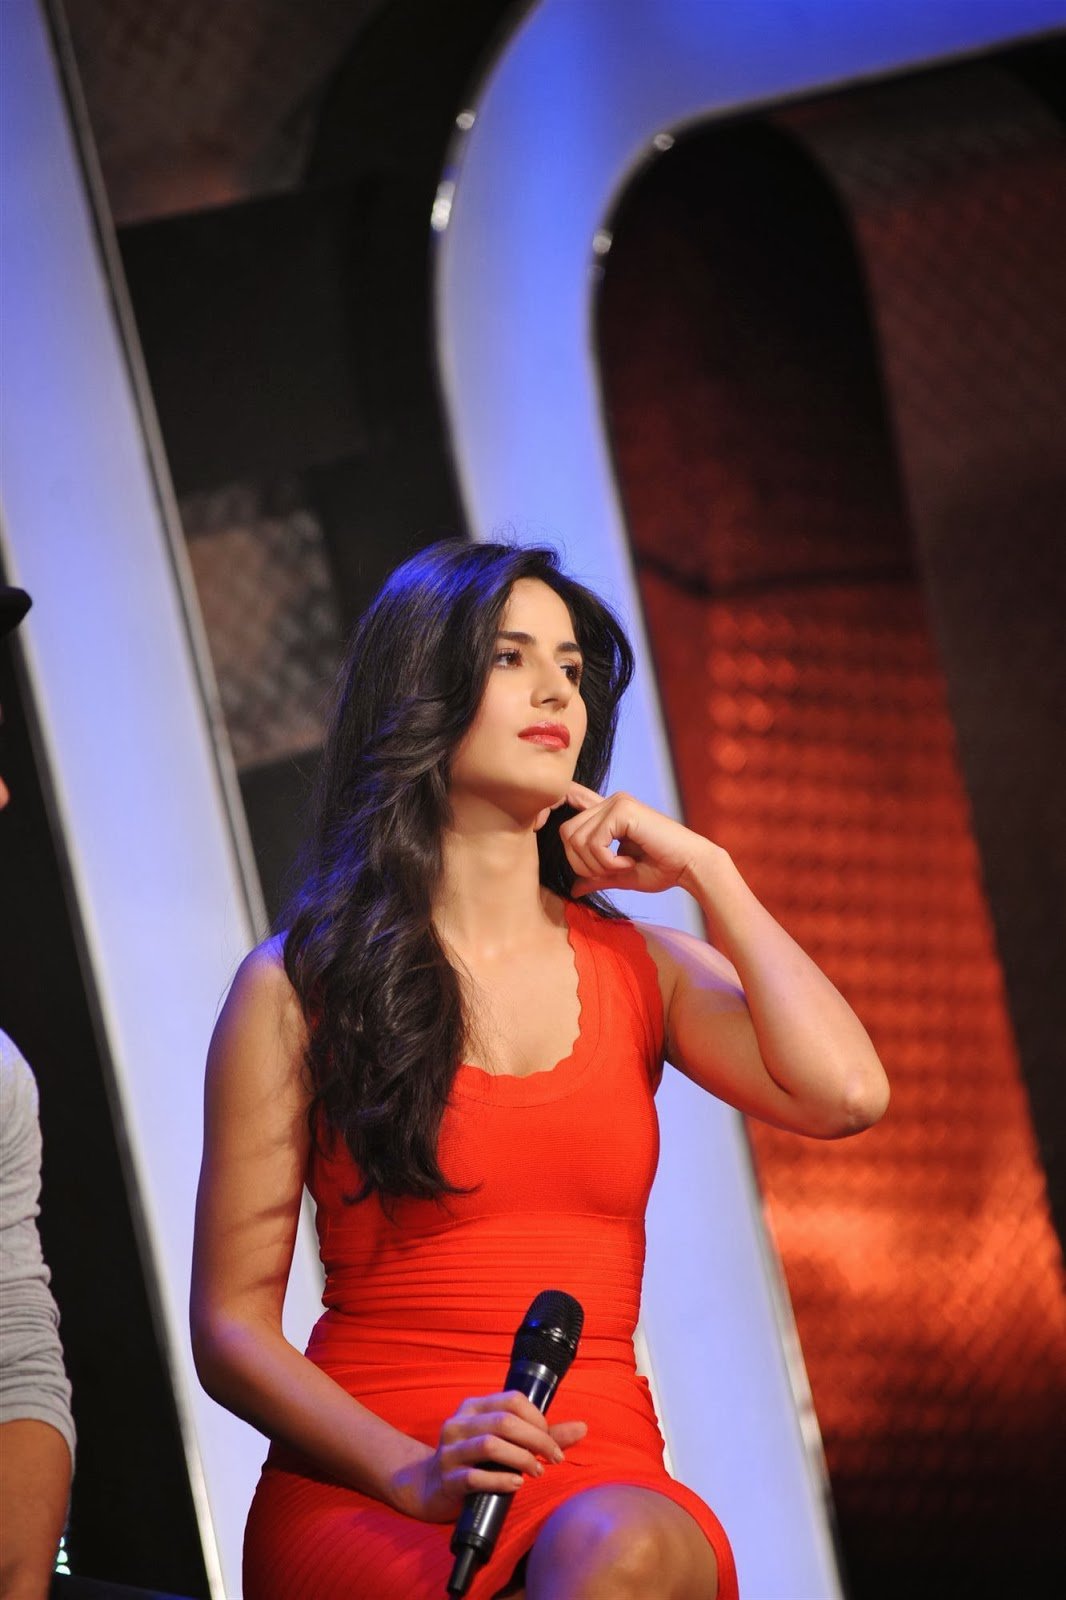 Katrina Kaif Spicy Thigh Show Photos In Orange Dress